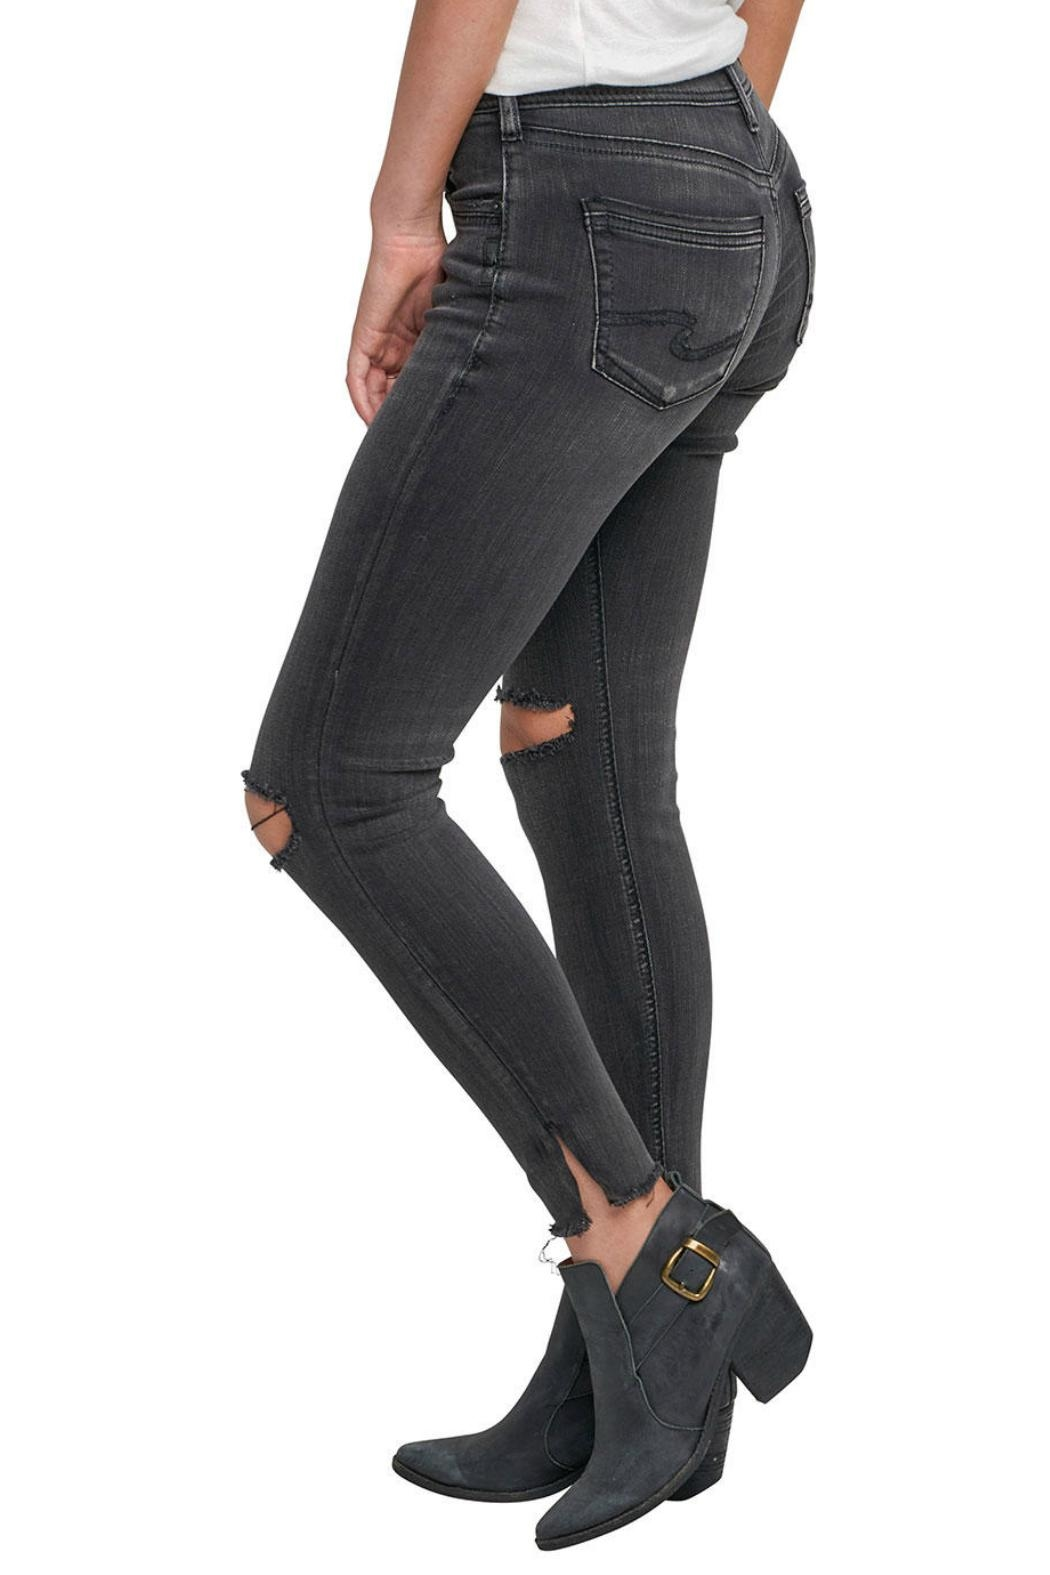 Silver Jeans Co. Avery Ankle Jeans - Side Cropped Image